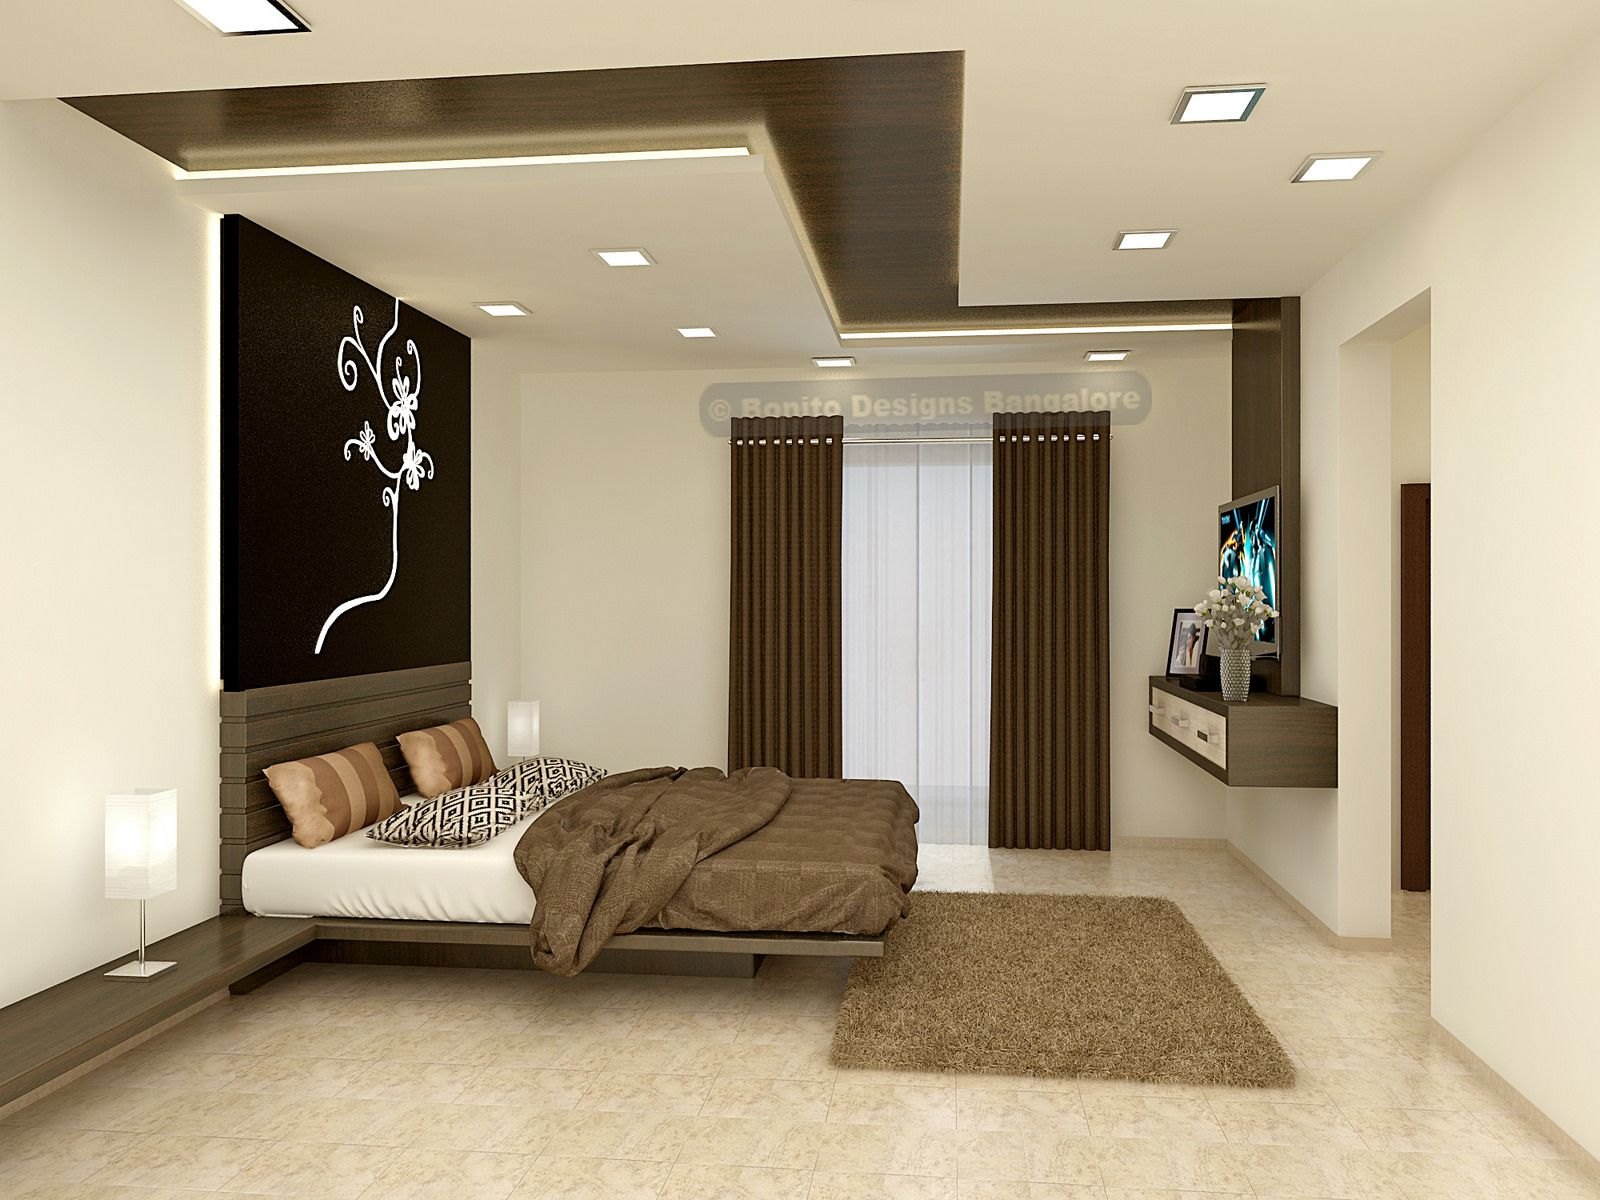 Modern master bedroom ceiling designs - Stunning Master Bedroom Design With Simple And Elegant Cnc Cutting Headboard